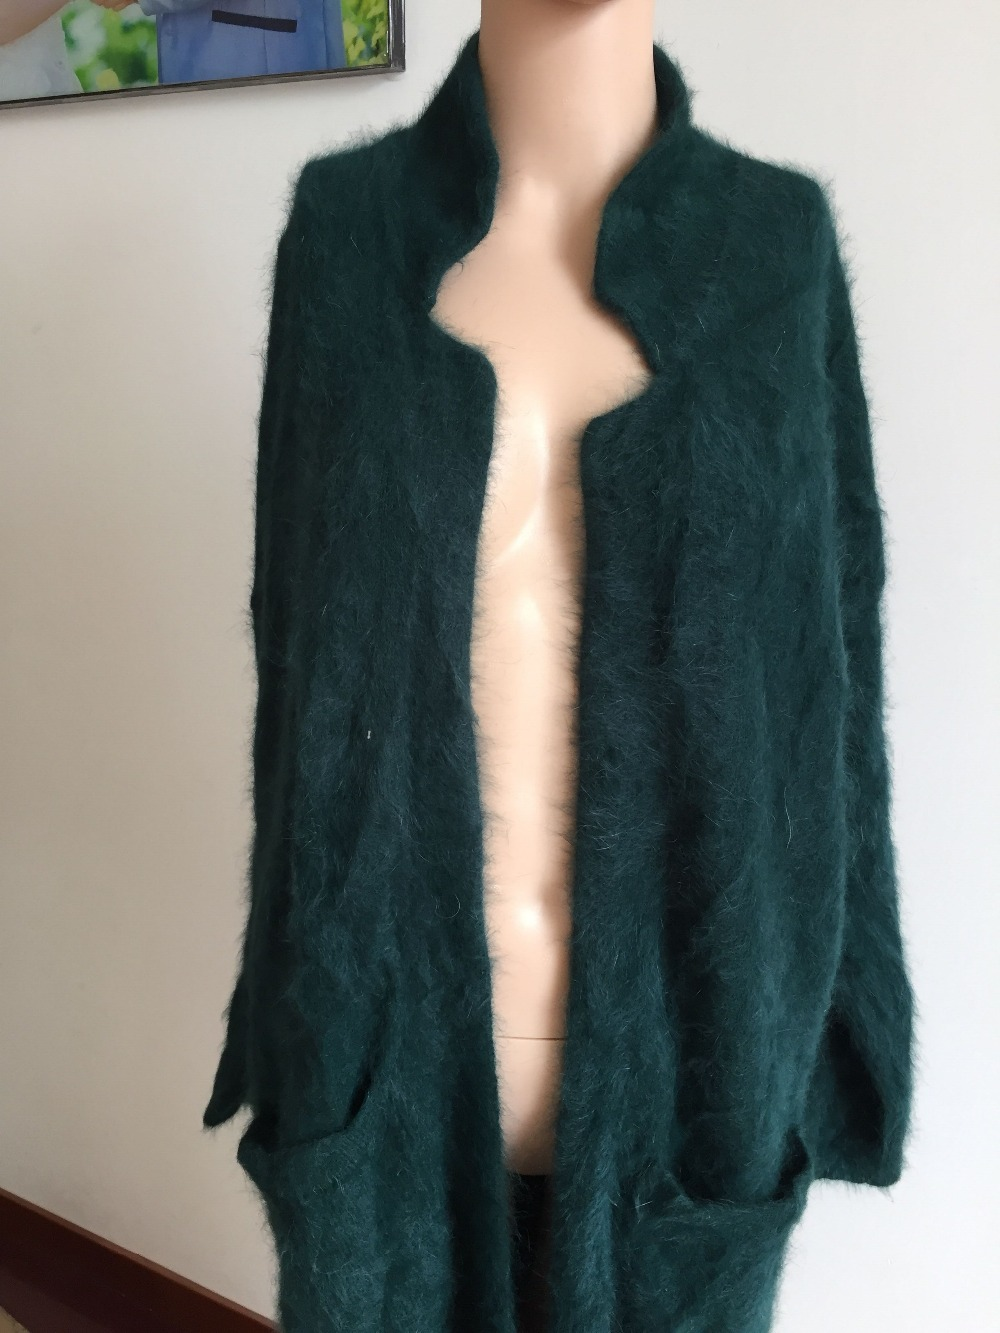 f045476313 Very Very Low Price Inventory clearance sale 100% Mink Cashmere Women  Sweaters Cardigans free shipping-in Cardigans from Women s Clothing on  Aliexpress.com ...